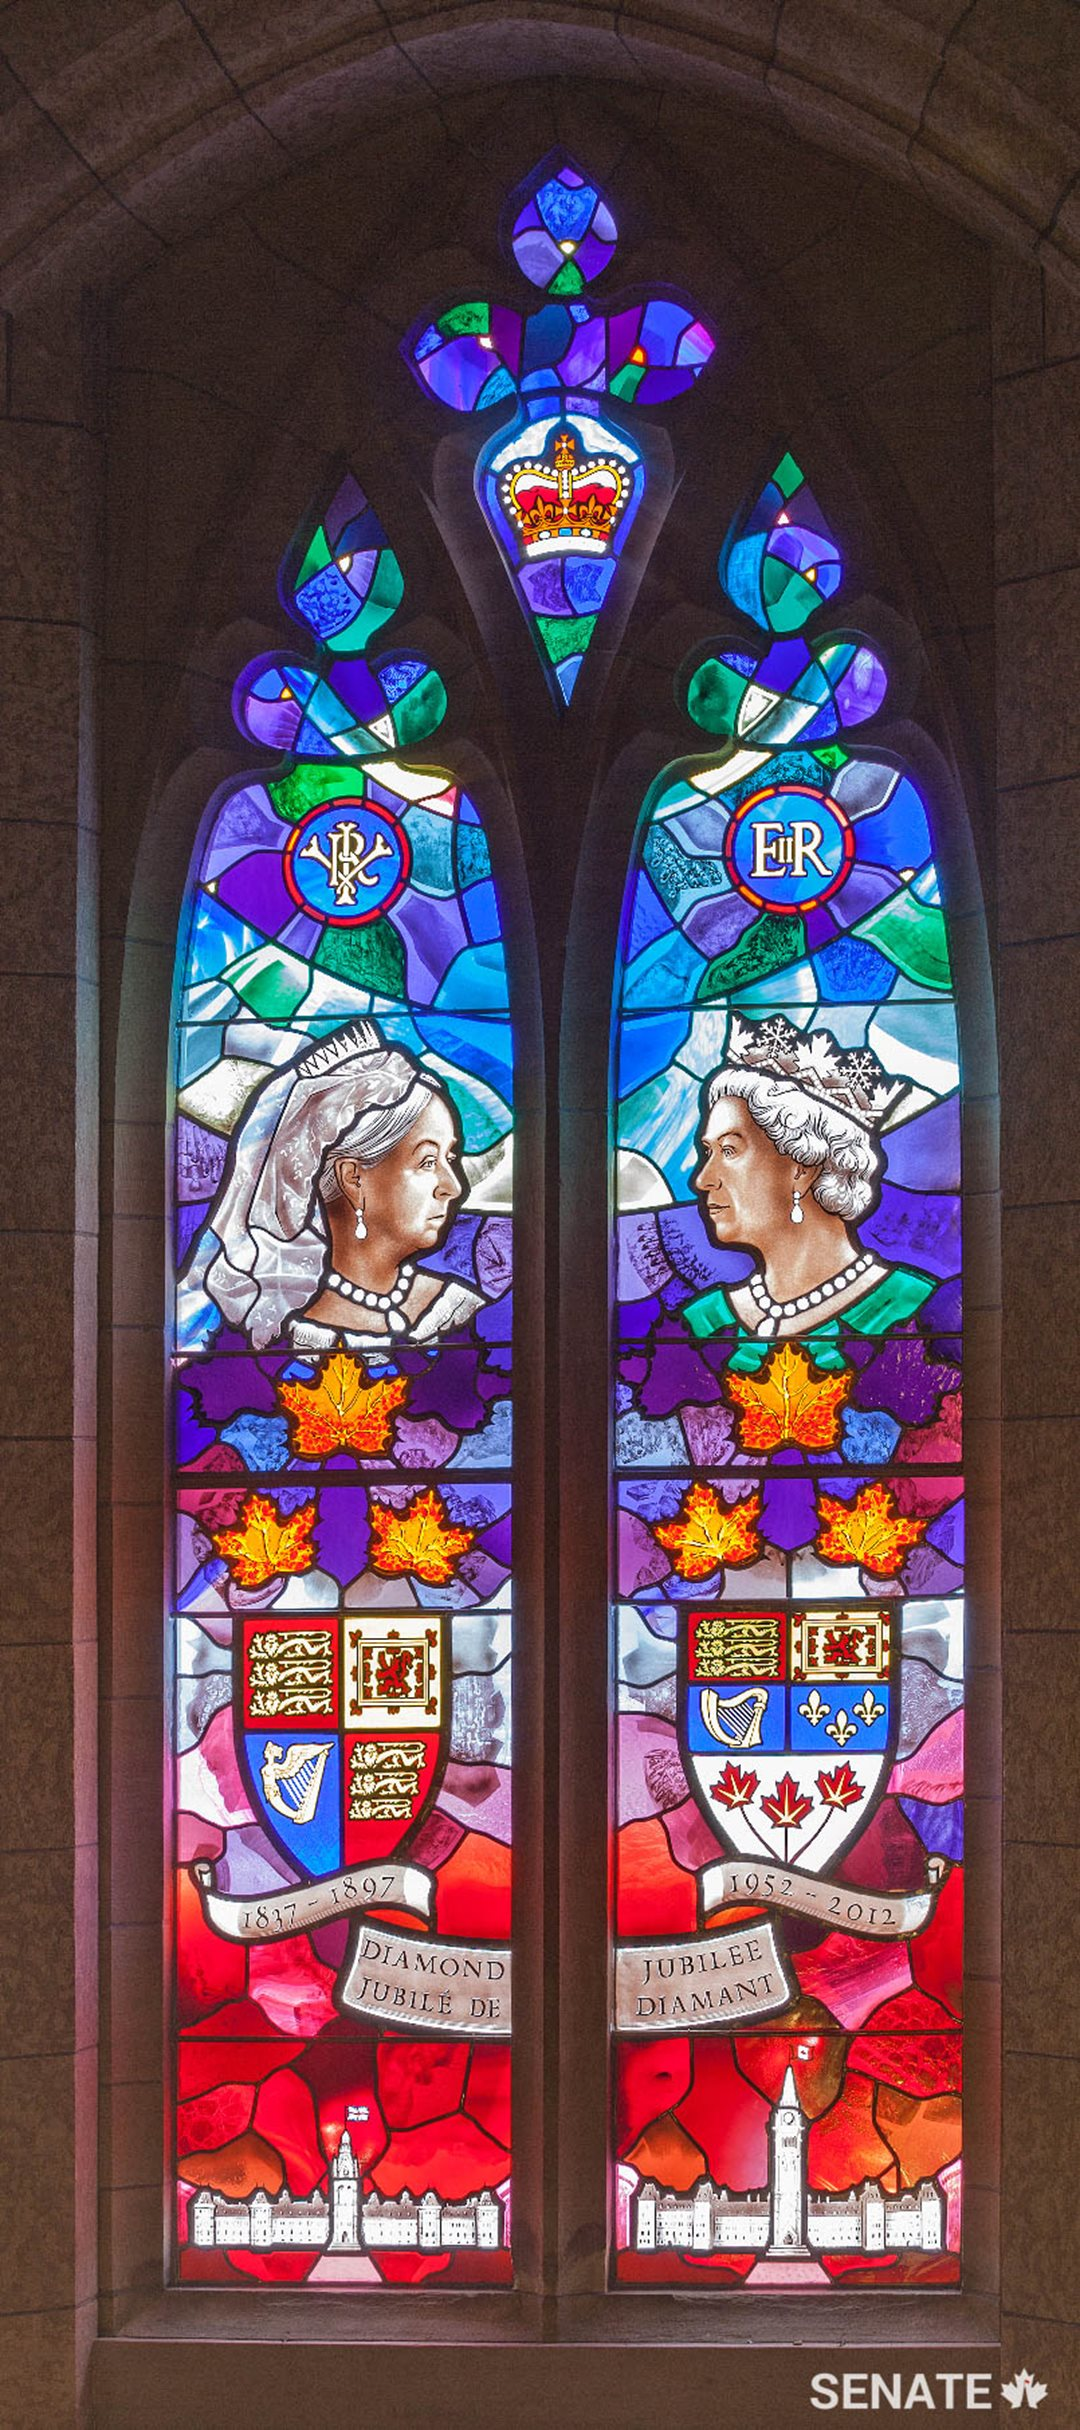 This window commemorates the Diamond Jubilee of Queen Elizabeth II in 2012, marking her 60 years on the throne. It juxtaposes her likeness with that of her great great grandmother, Queen Victoria, who celebrated her Diamond Jubilee in 1897.